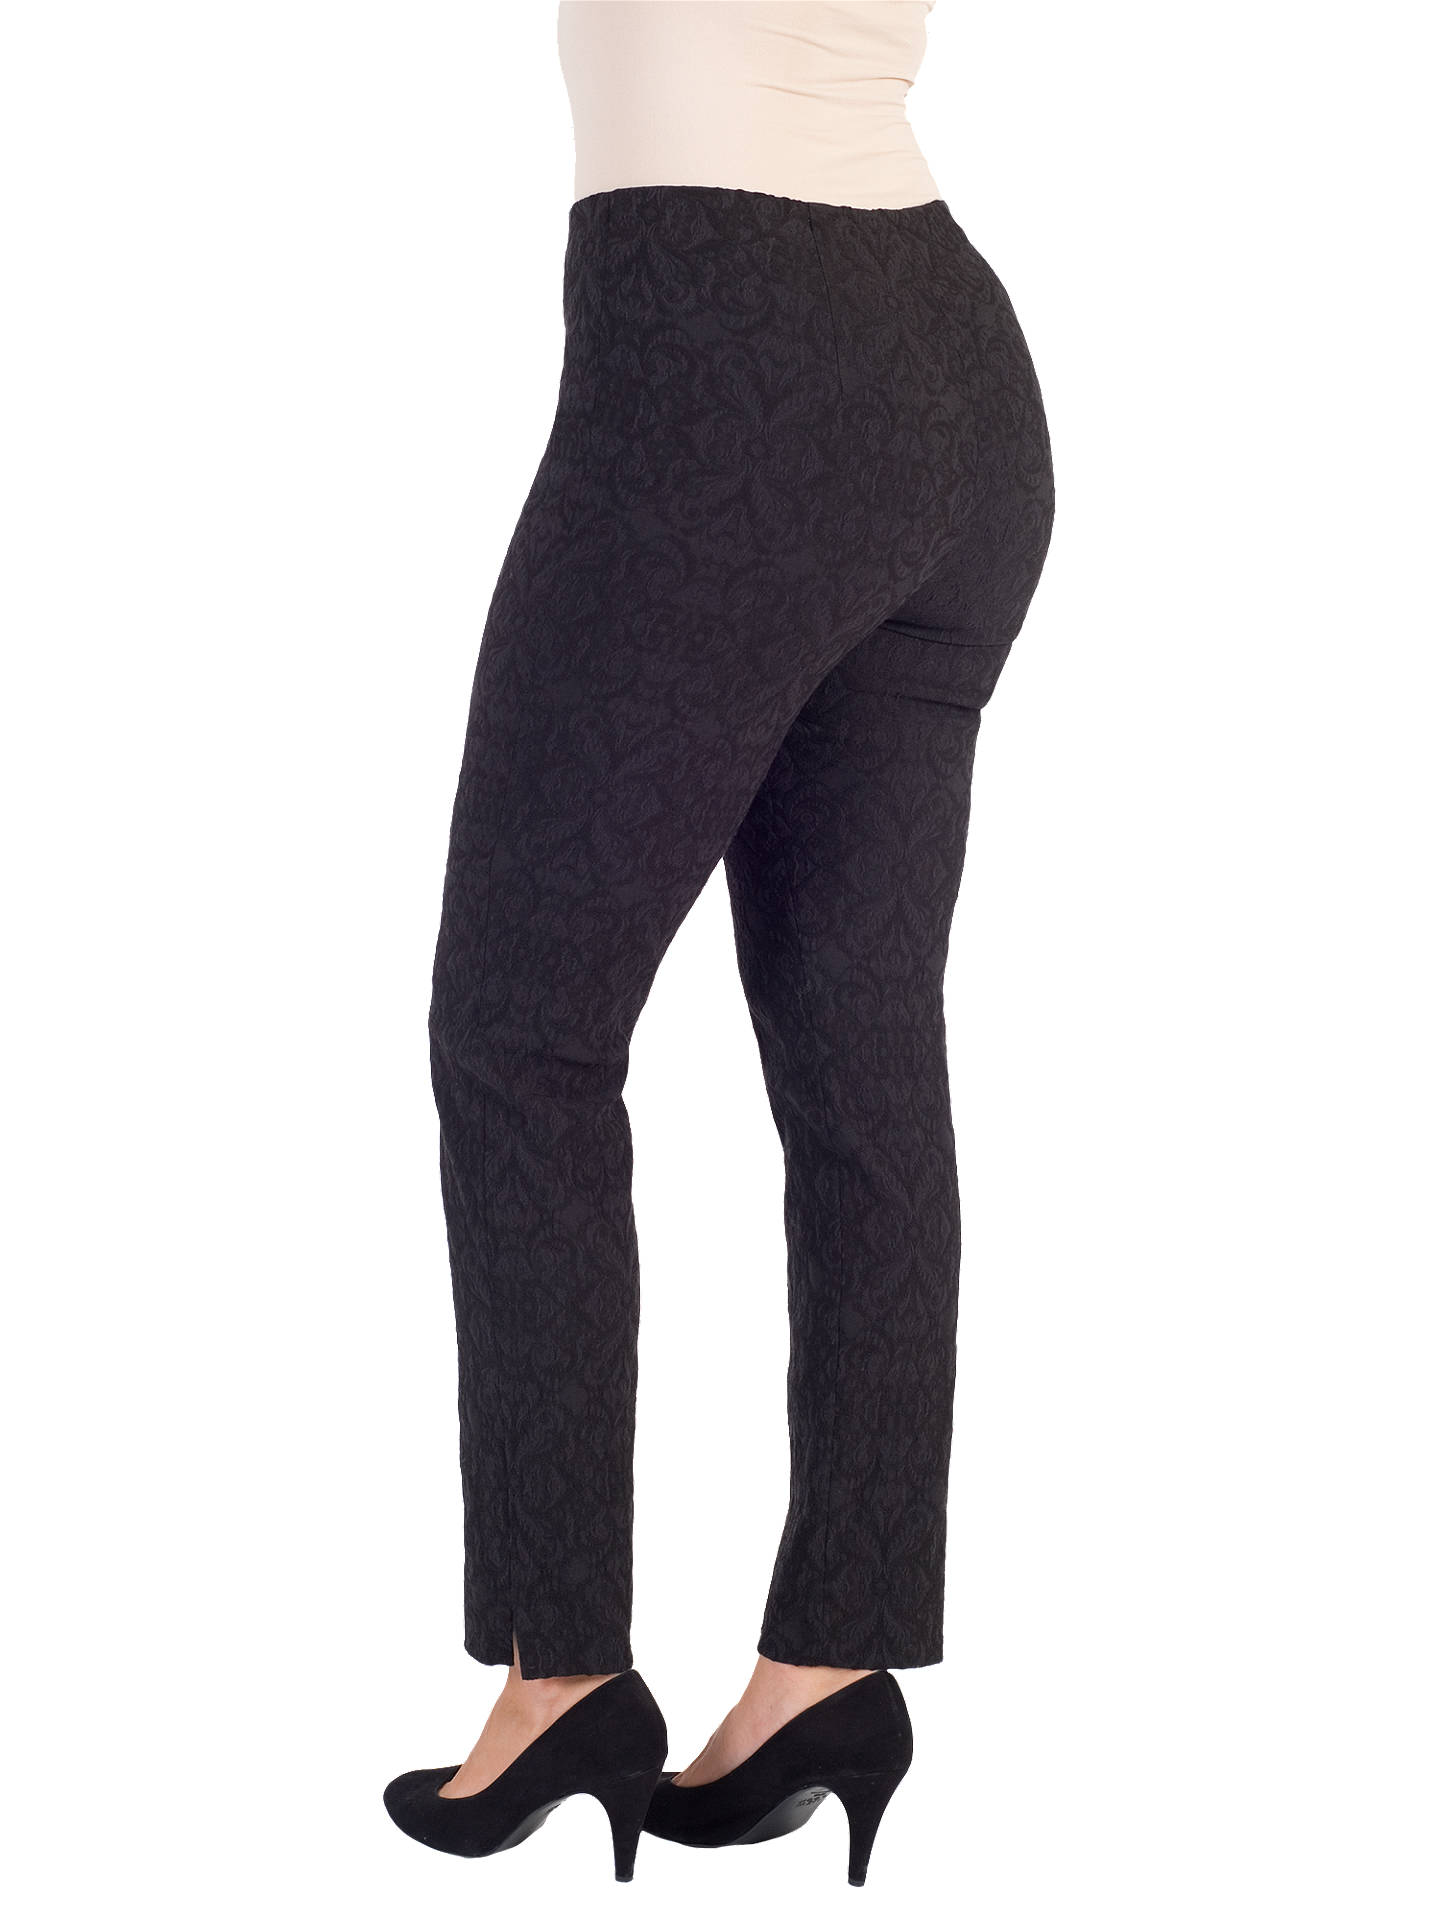 Buy Chesca Jacquard Slim Stretch Trousers, Black, 14 Online at johnlewis.com